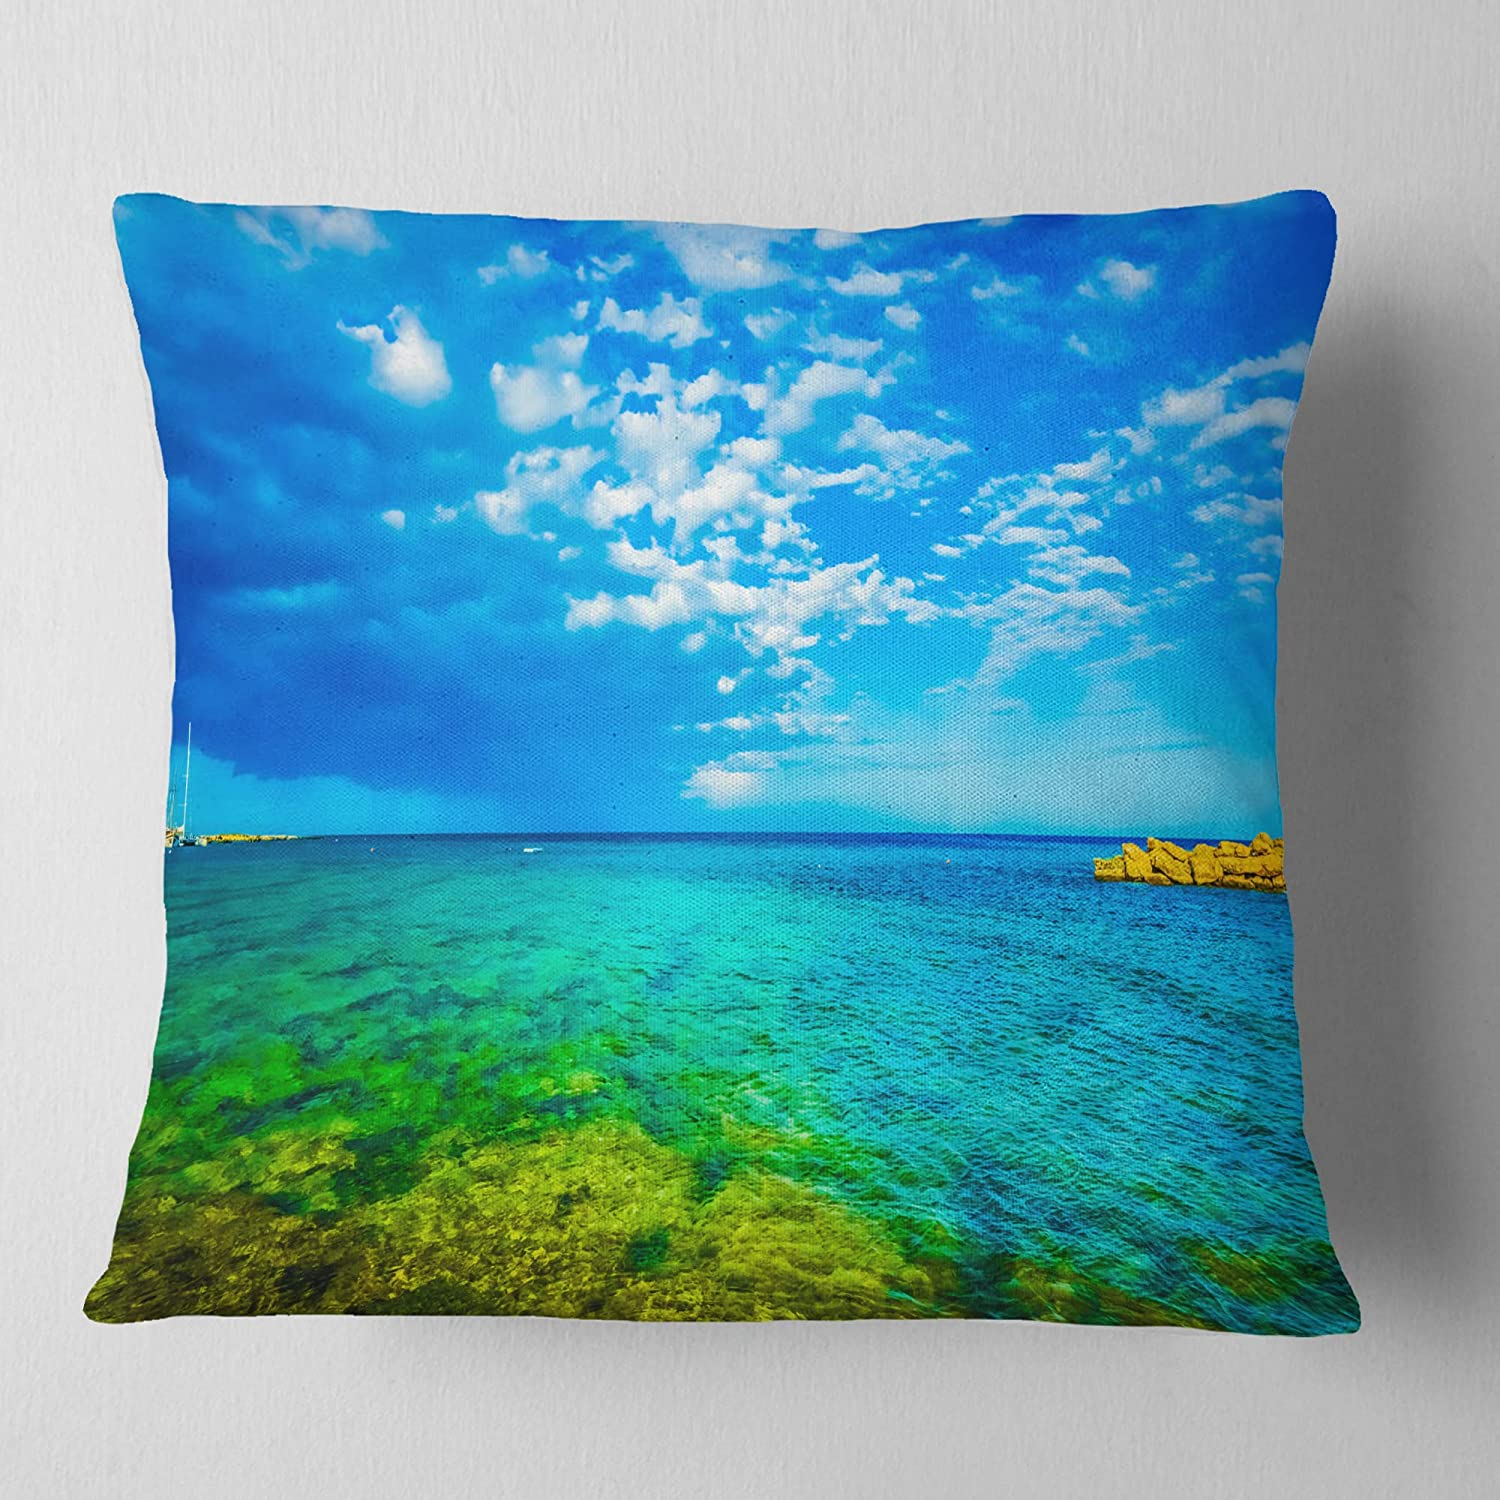 Designart CU11459-26-26 Picturesque Green Blue Seashore' Modern Seascape Throw Cushion Pillow Cover for Living Room, Sofa, 26 in. x 26 in, Pillow Insert + Cushion Cover Printed on Both Side